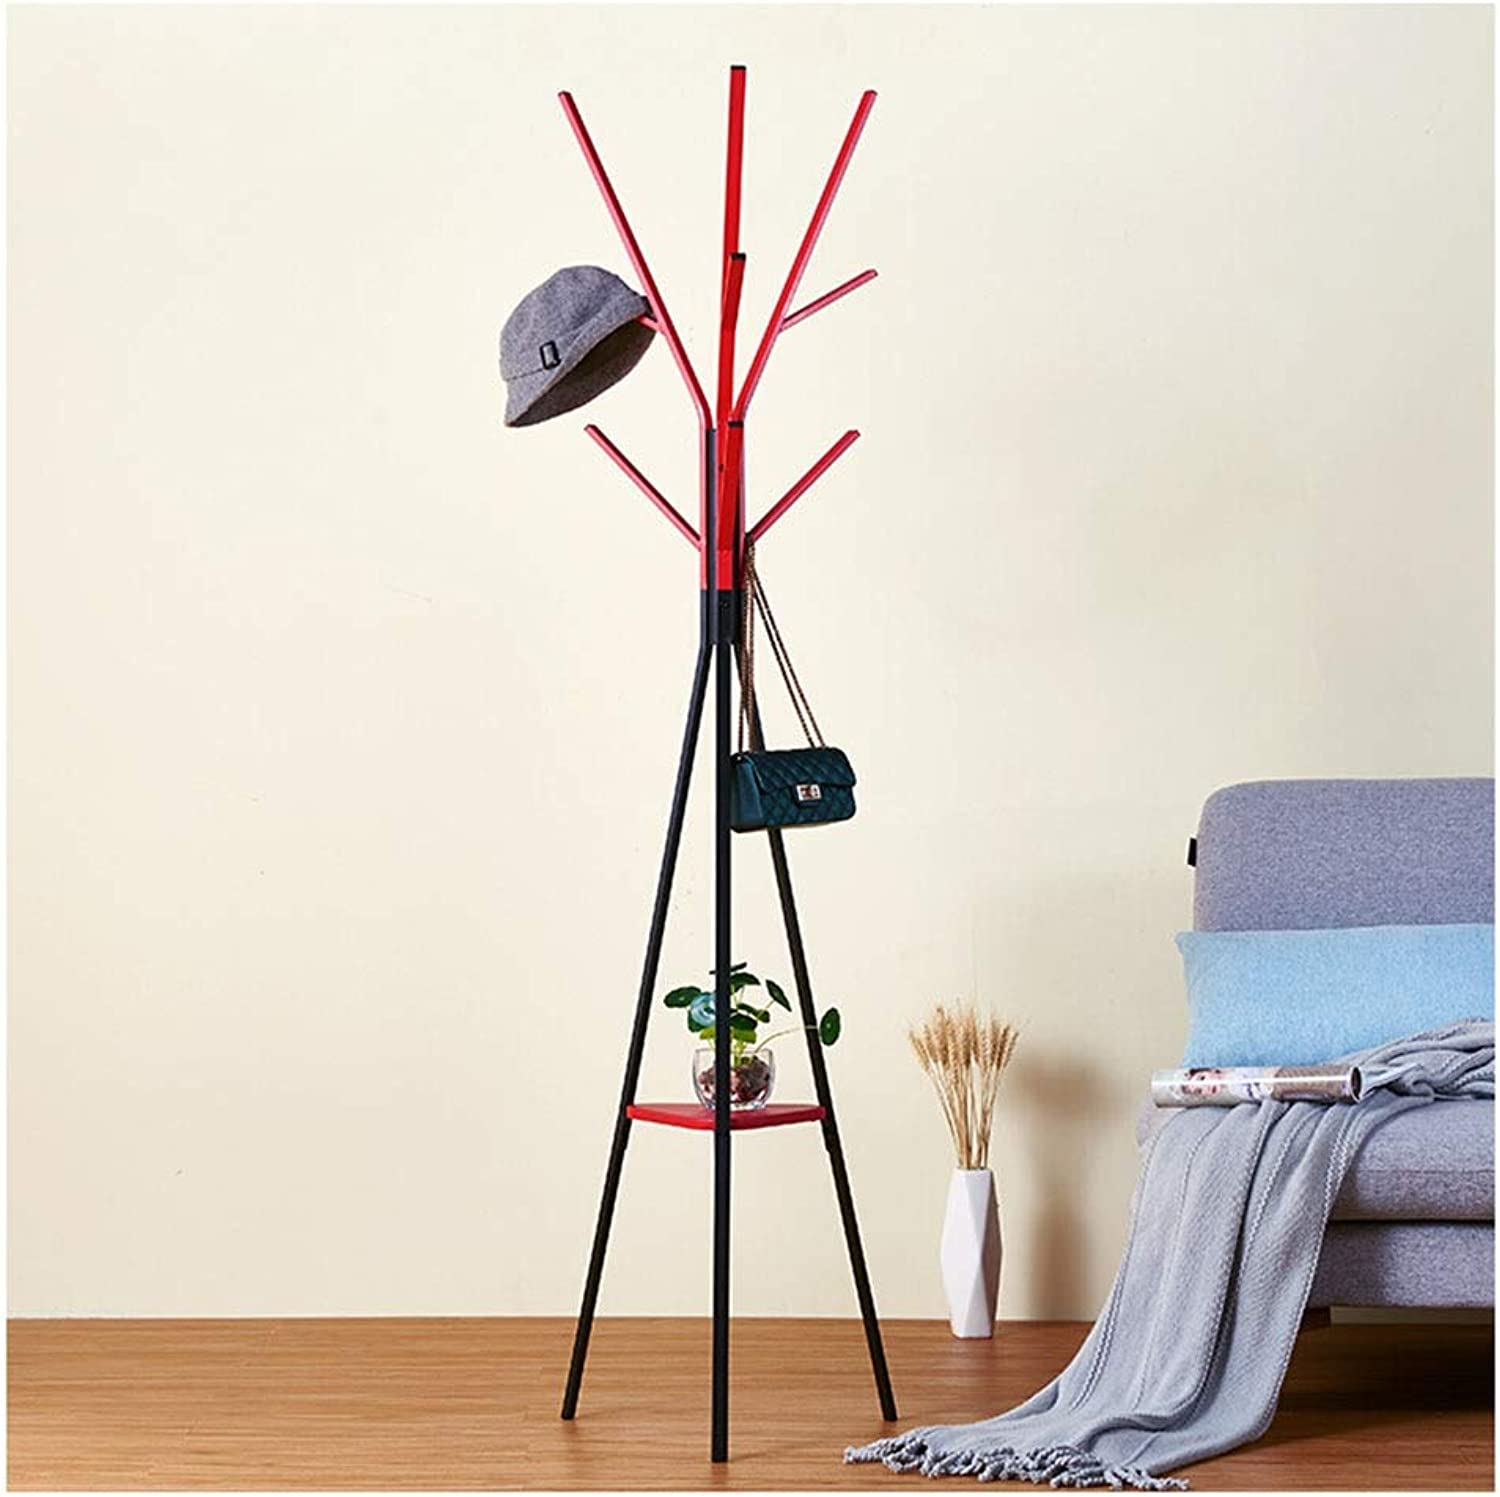 Qi_Hallway Furniture Standing Coat Racks Metal 6 Hook Hall Tree Entrance Corridor Coat Stand Clothes Rack Clothes Rack Coat Hat Bag Scarf Umbrella Stand Standing Coat Racks